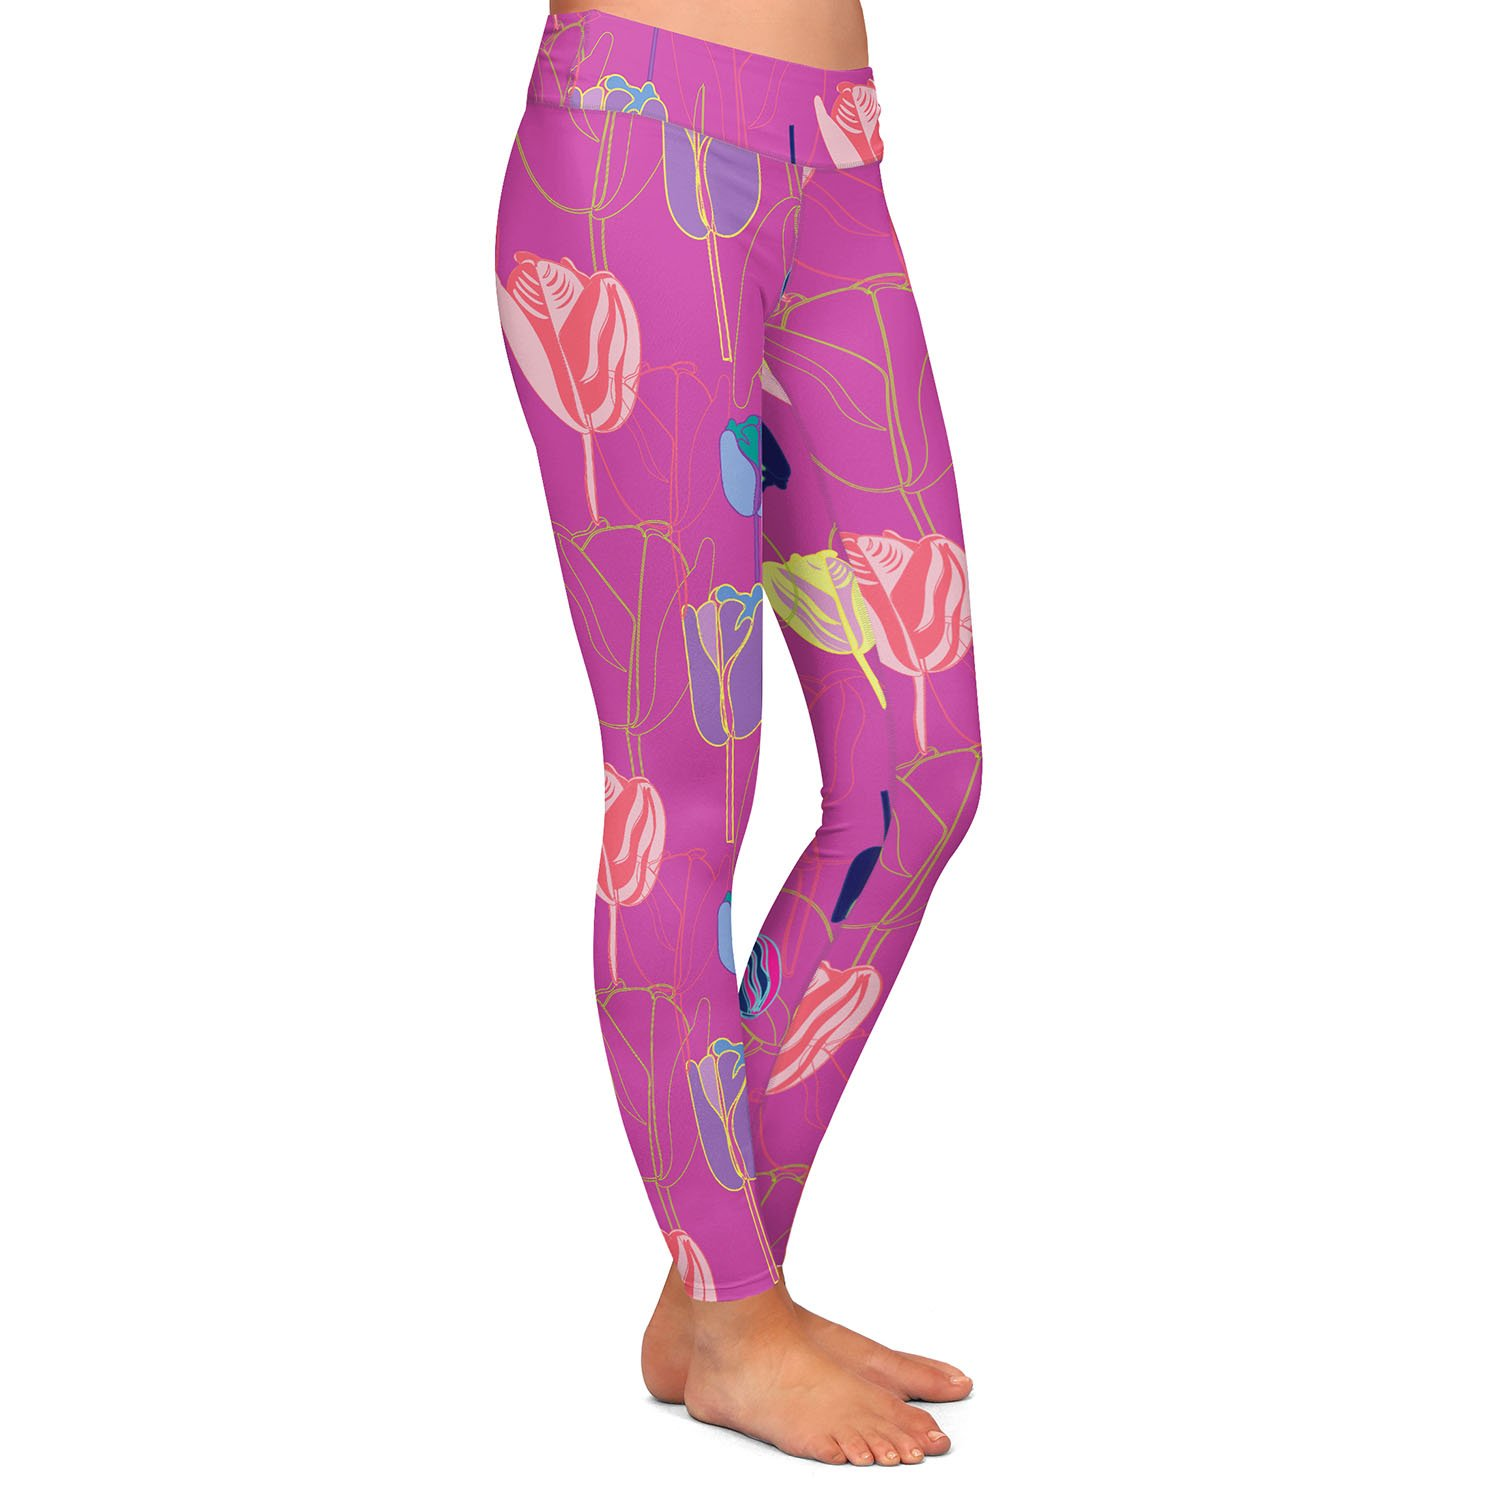 Tulips Pink Yellow Athletic Yoga Leggings from DiaNoche Designs by Yasmin Dadabhoy